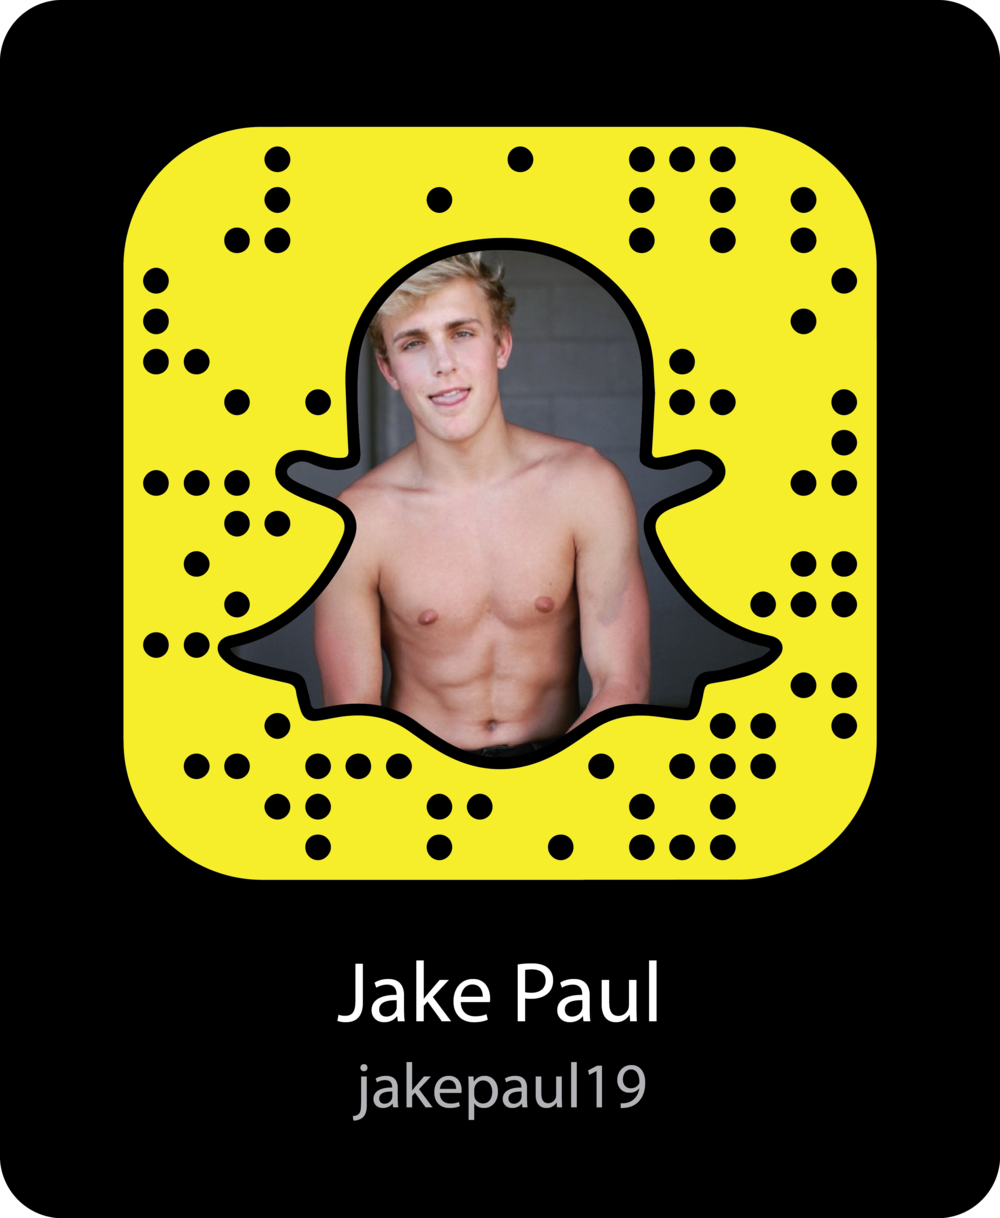 how to find real name on snapchat